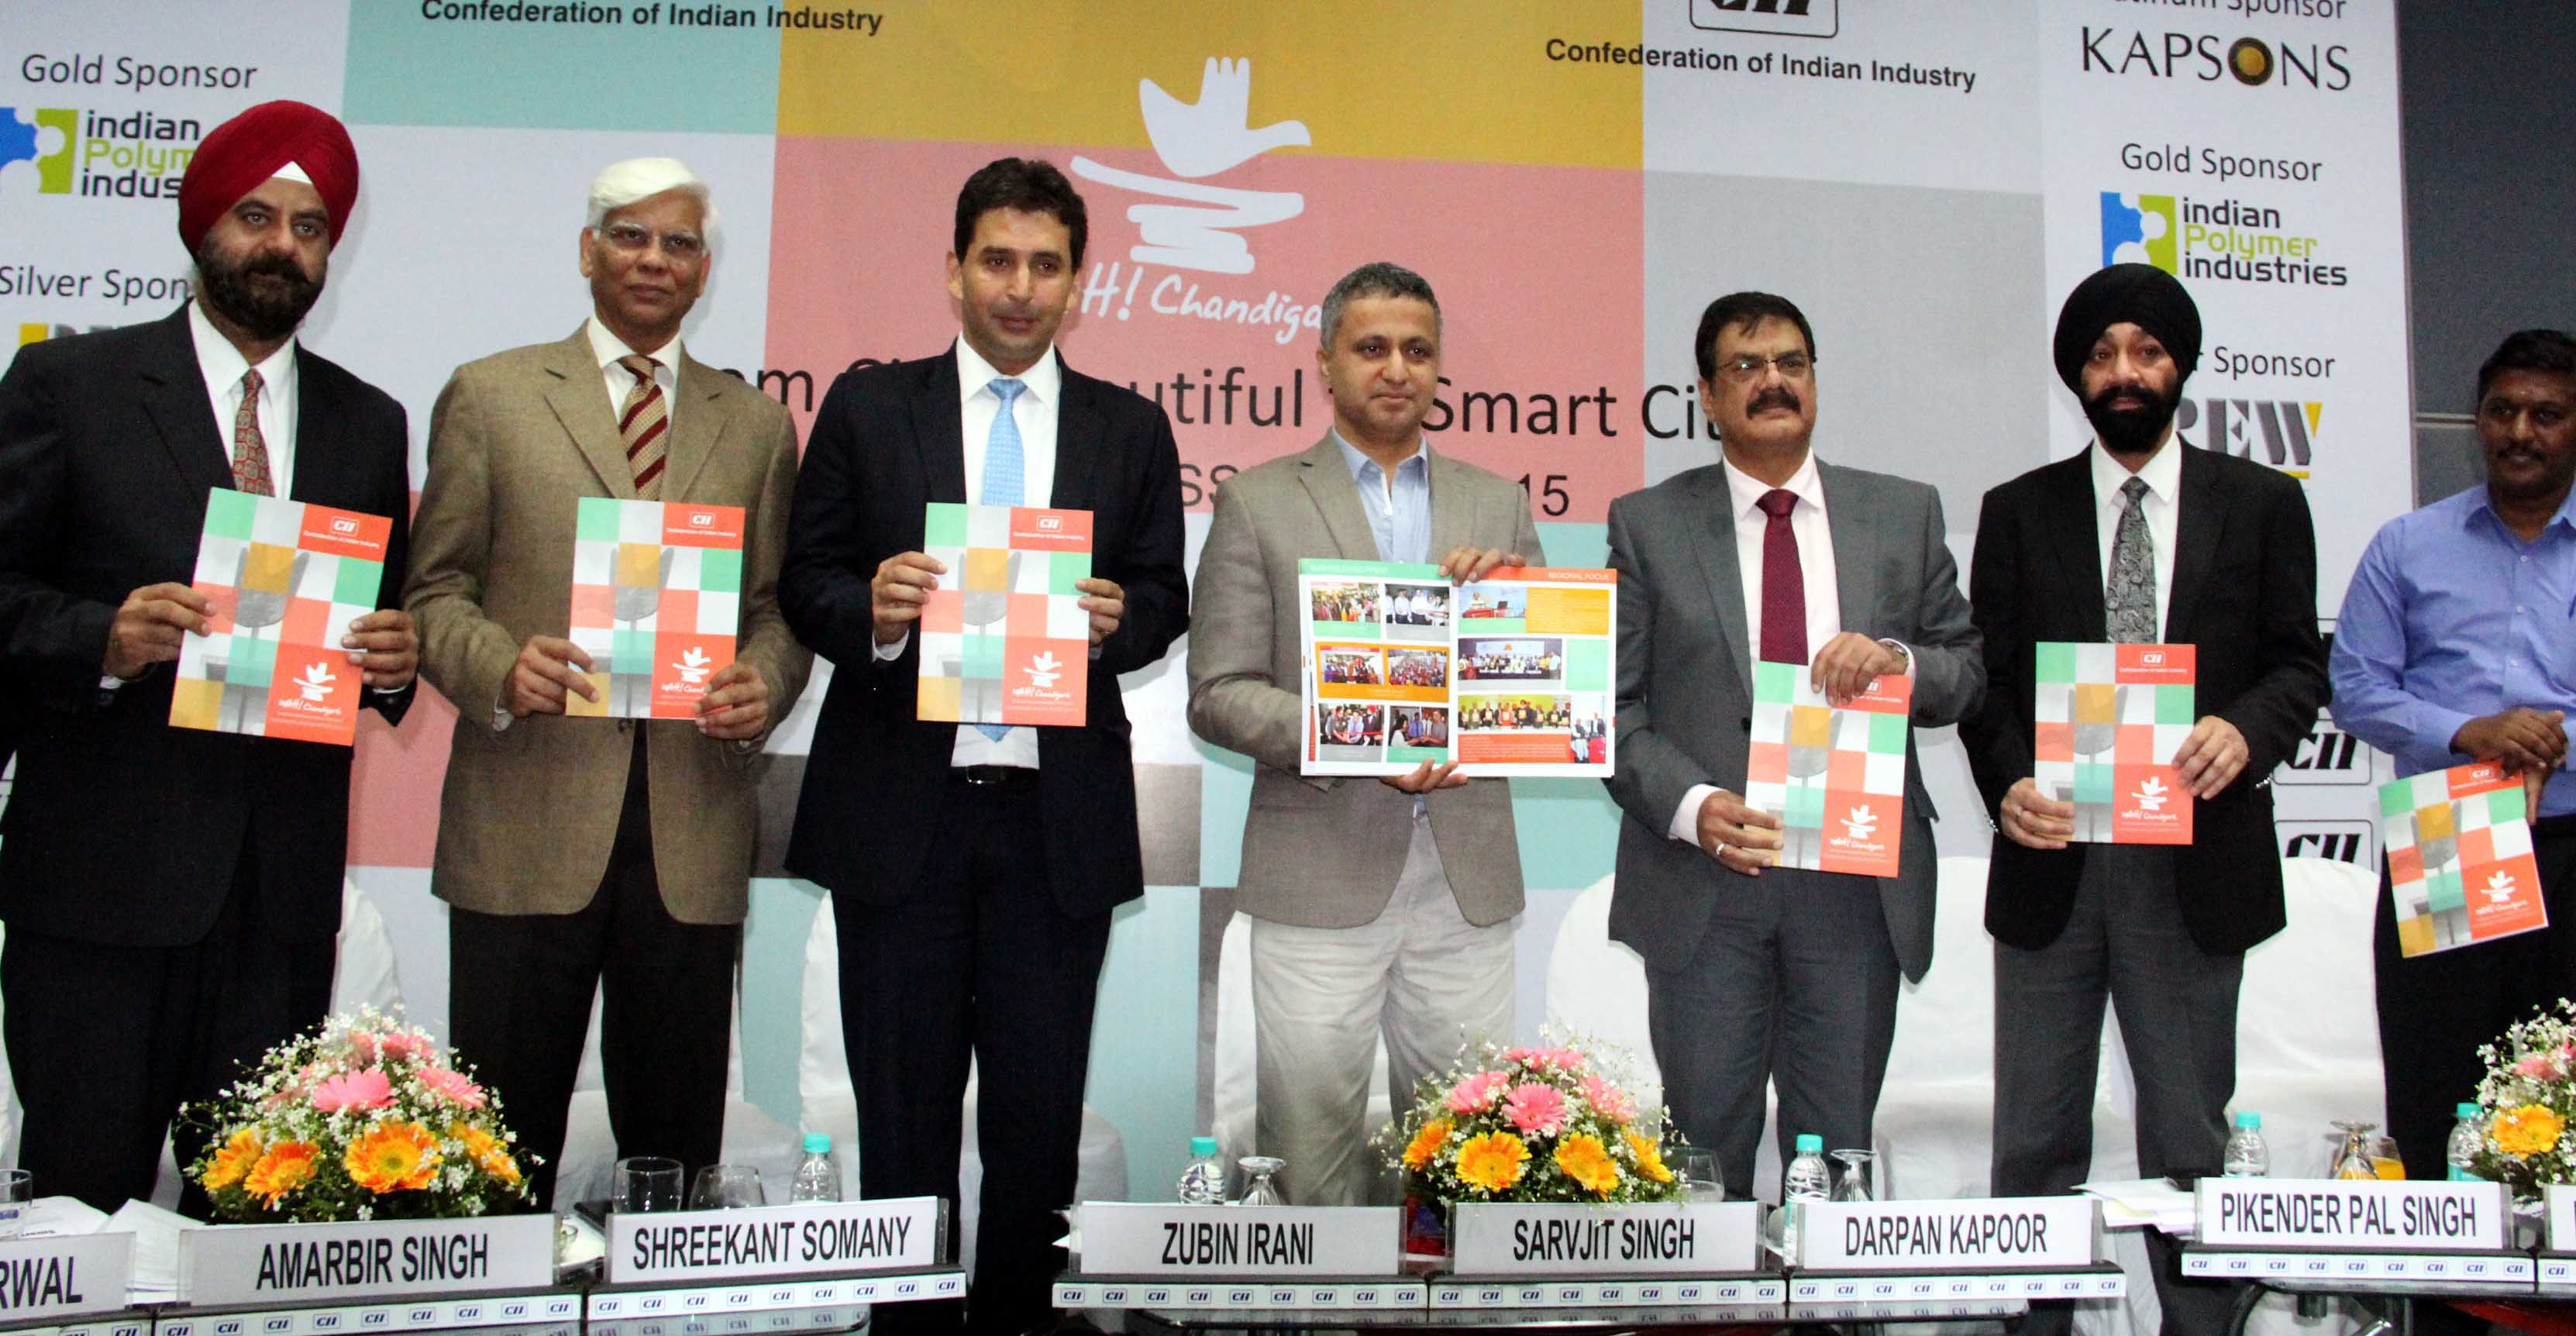 UT Finance Secretary, Mr. Sarvjit Singh releasing the annual report CII in the Session on WAH! Chandigarh: from City Beautiful to Smart City at CII, Sector-31, Chandigarh on Thursday, March 05, 2015.